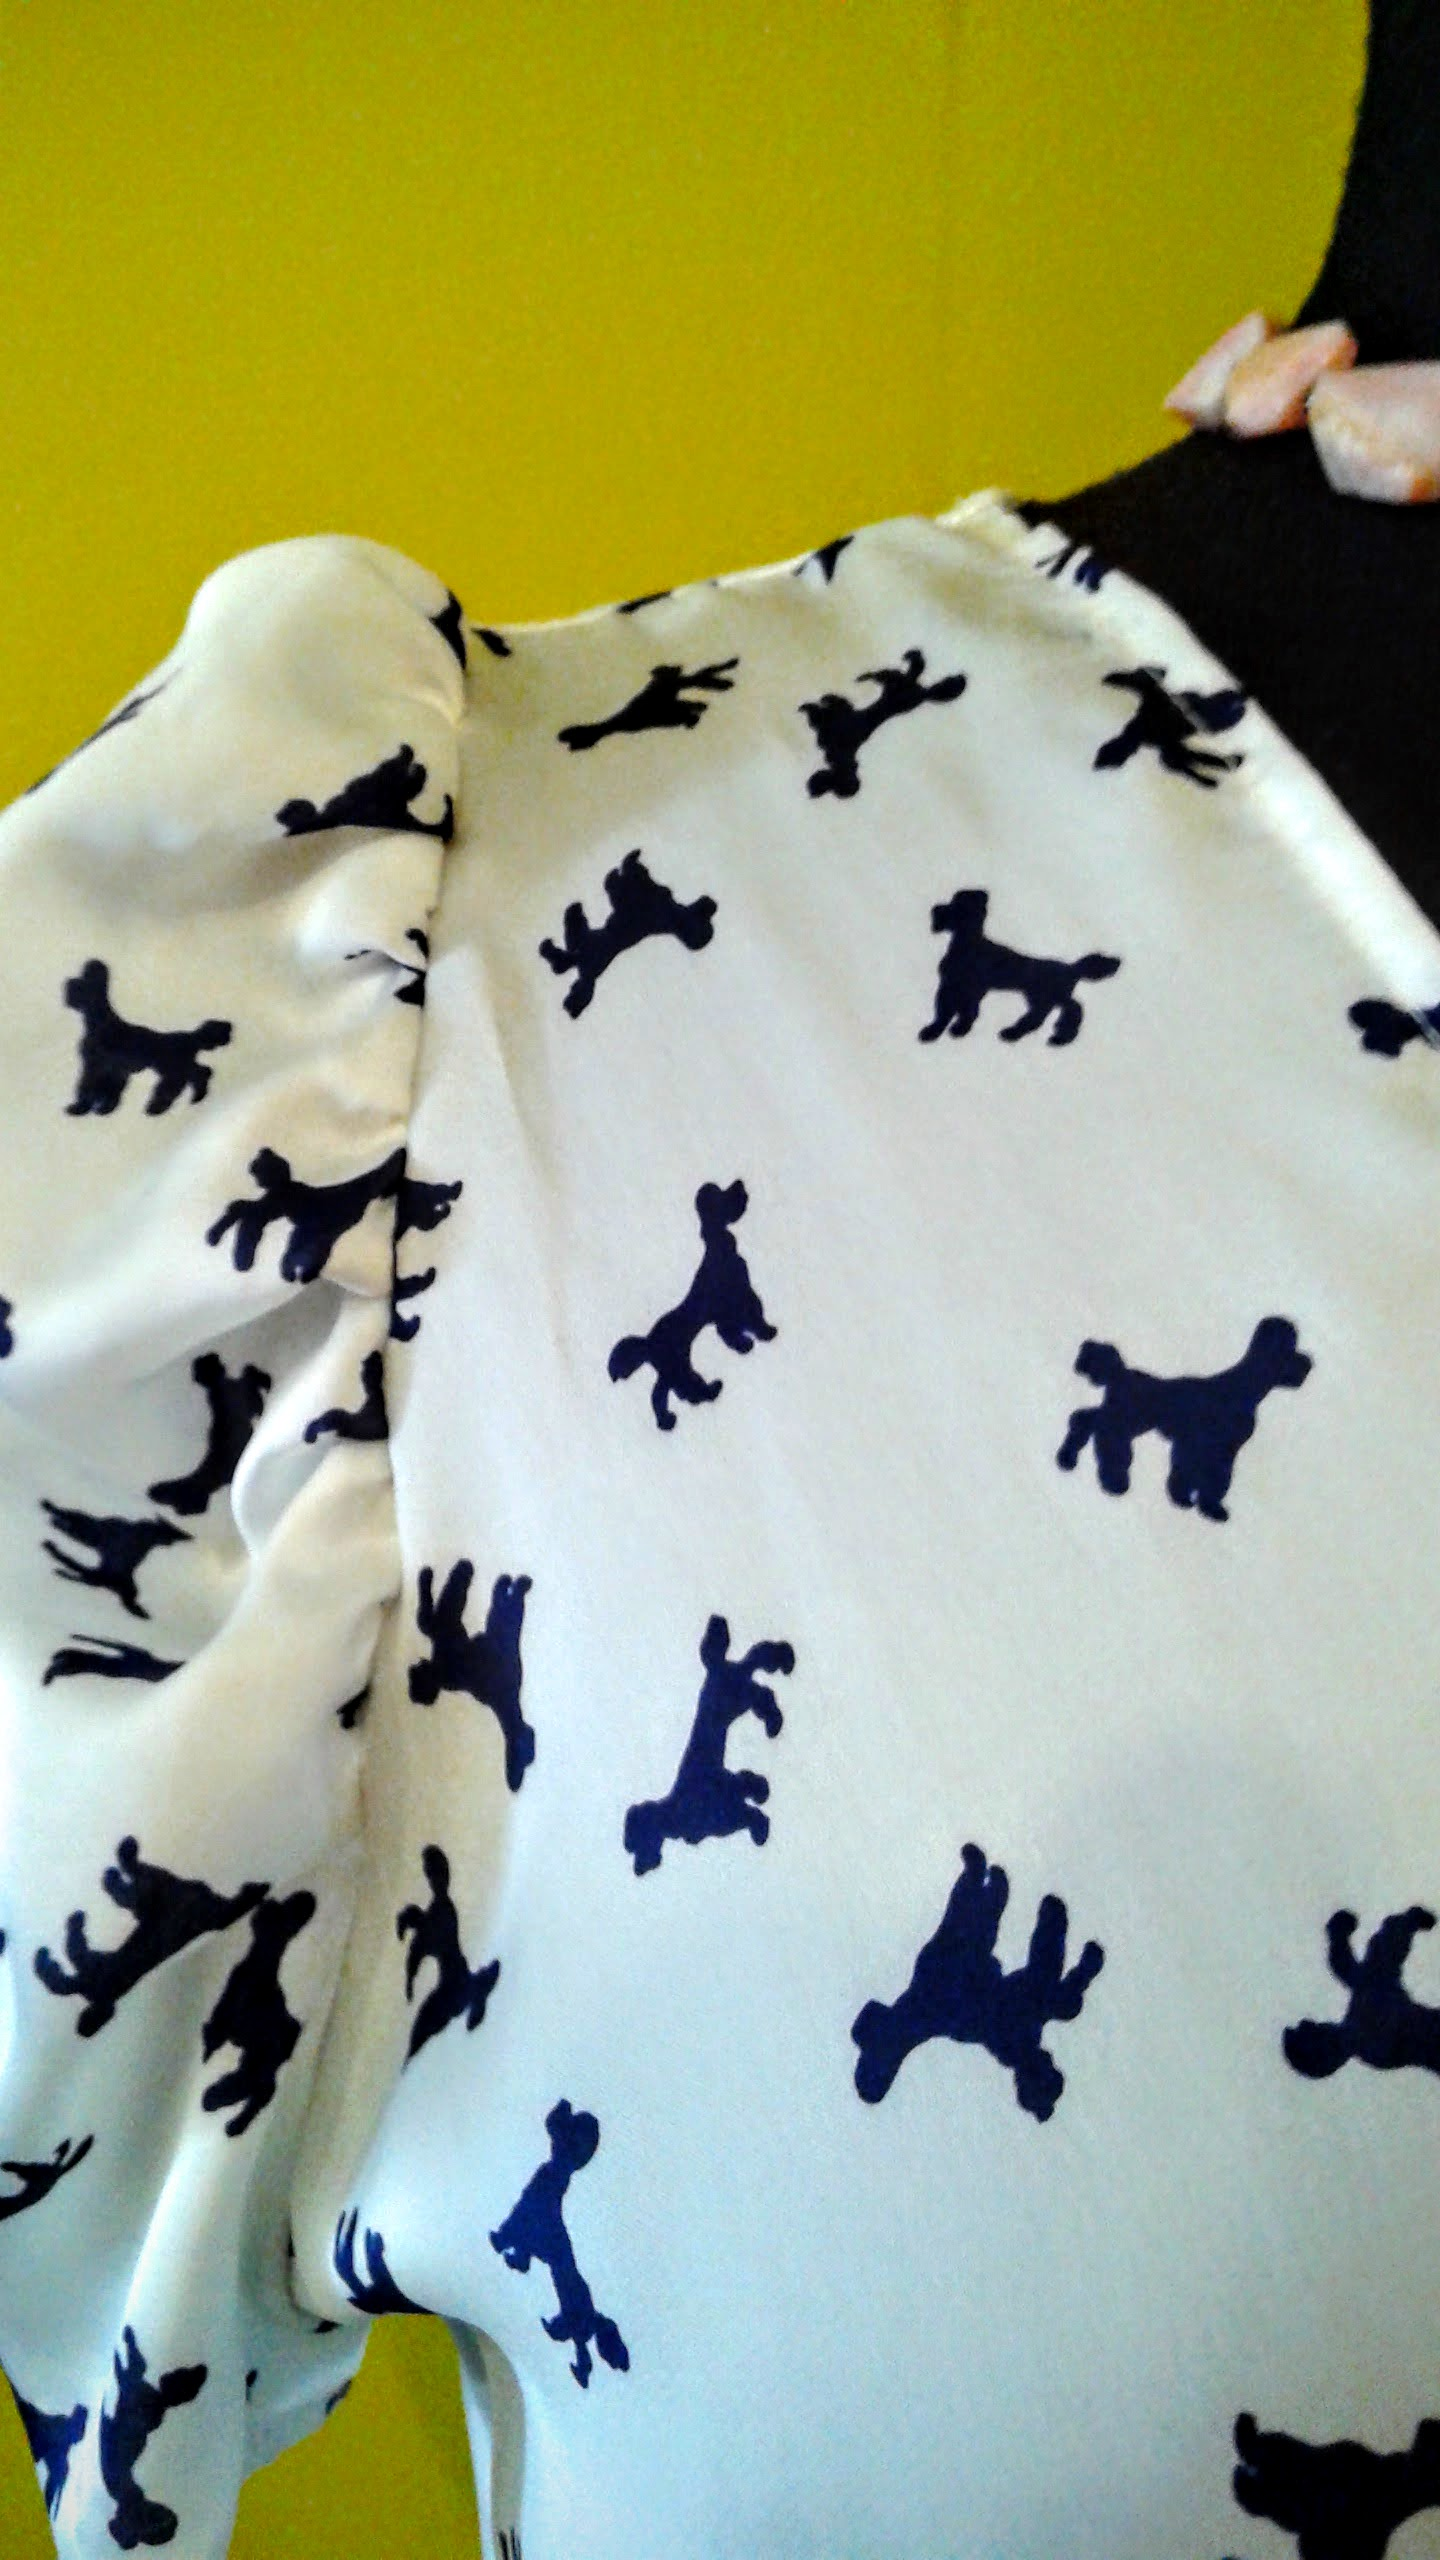 A dress with POODLES on it!